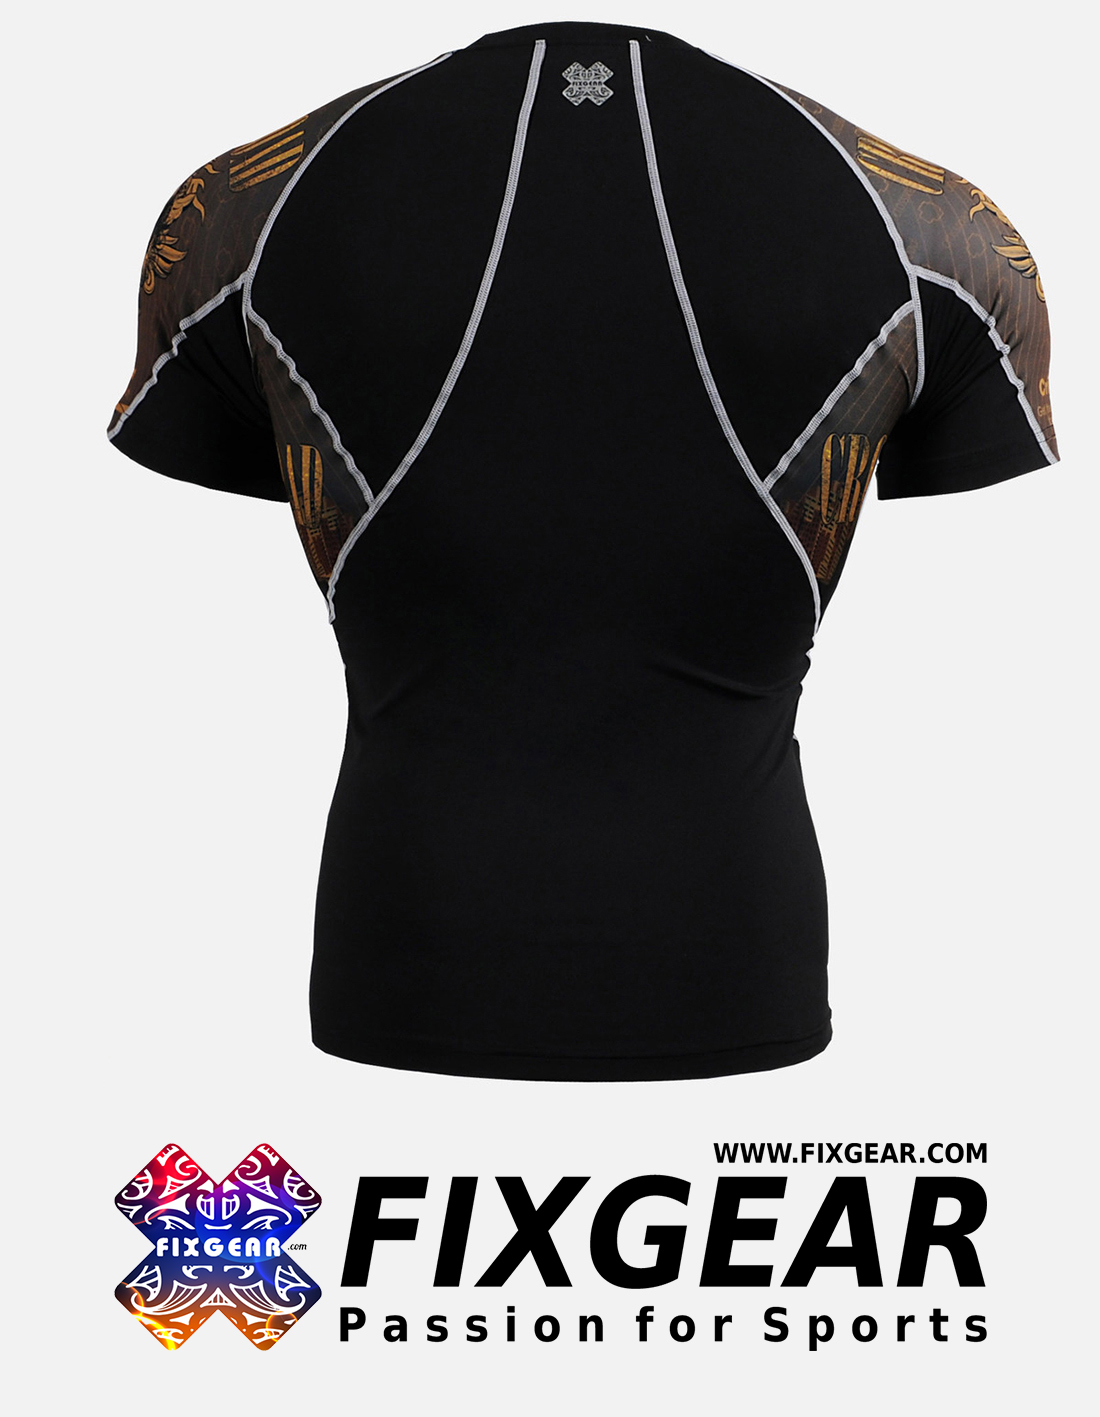 FIXGEAR C2S-B27 Compression Base Layer Shirt Short Sleeve